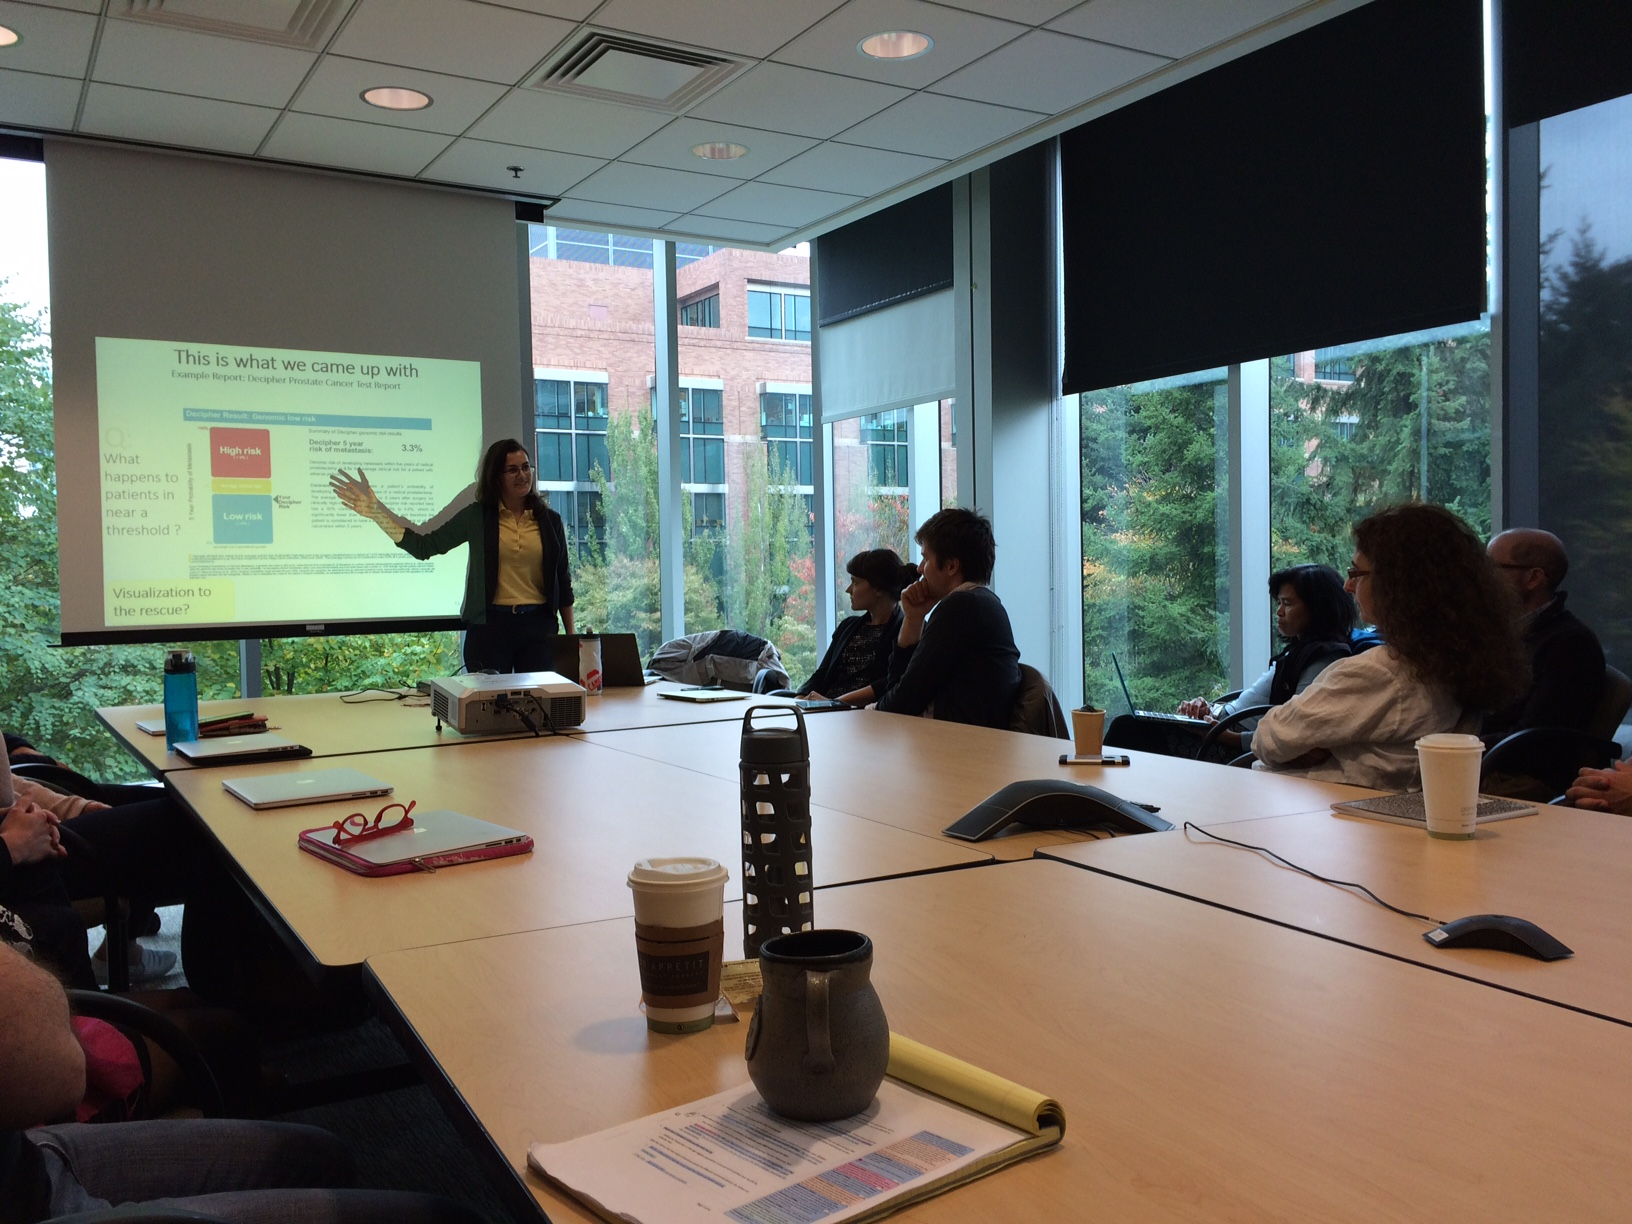 Ana Crisan (colleague of Jennifer Gardy), presenting to a smaller group at Fred Hutch, following Jennfier's presentation.